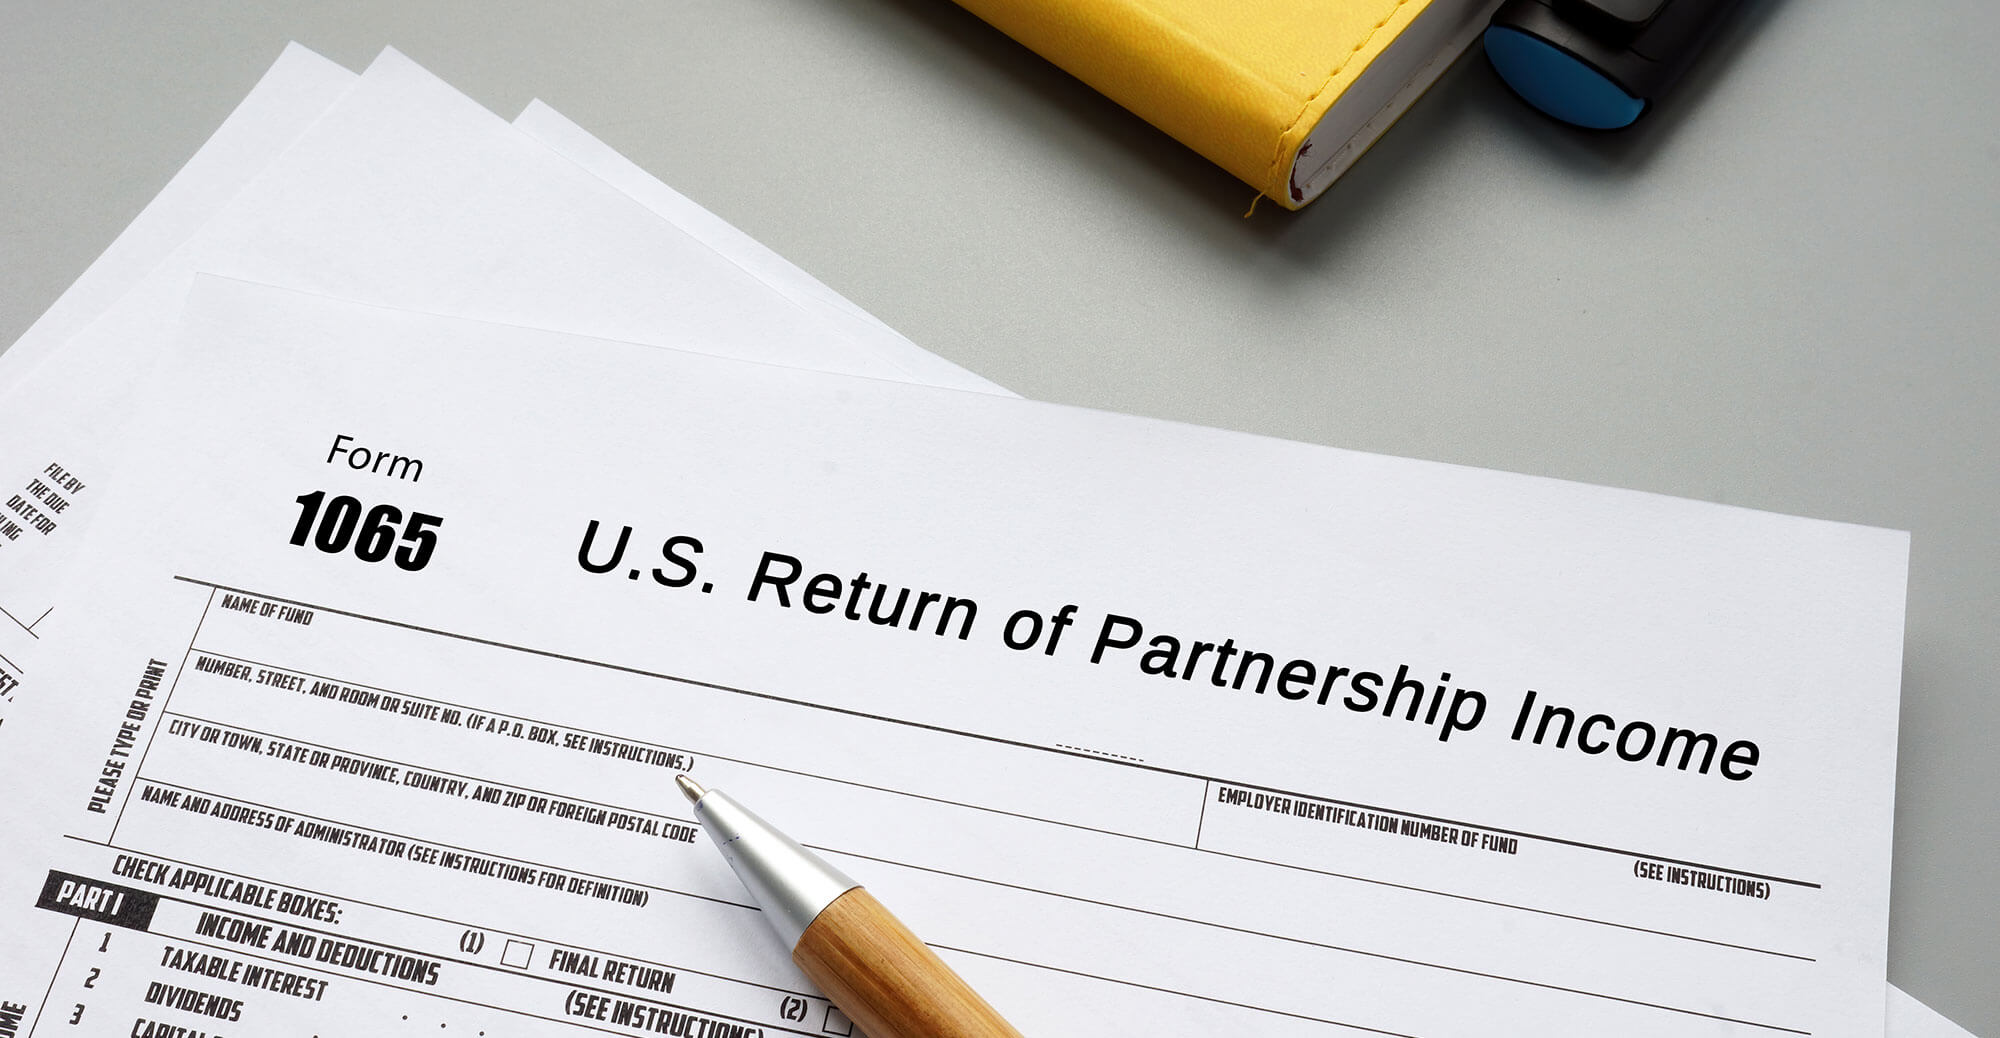 Are You a Partner in a Partnership?